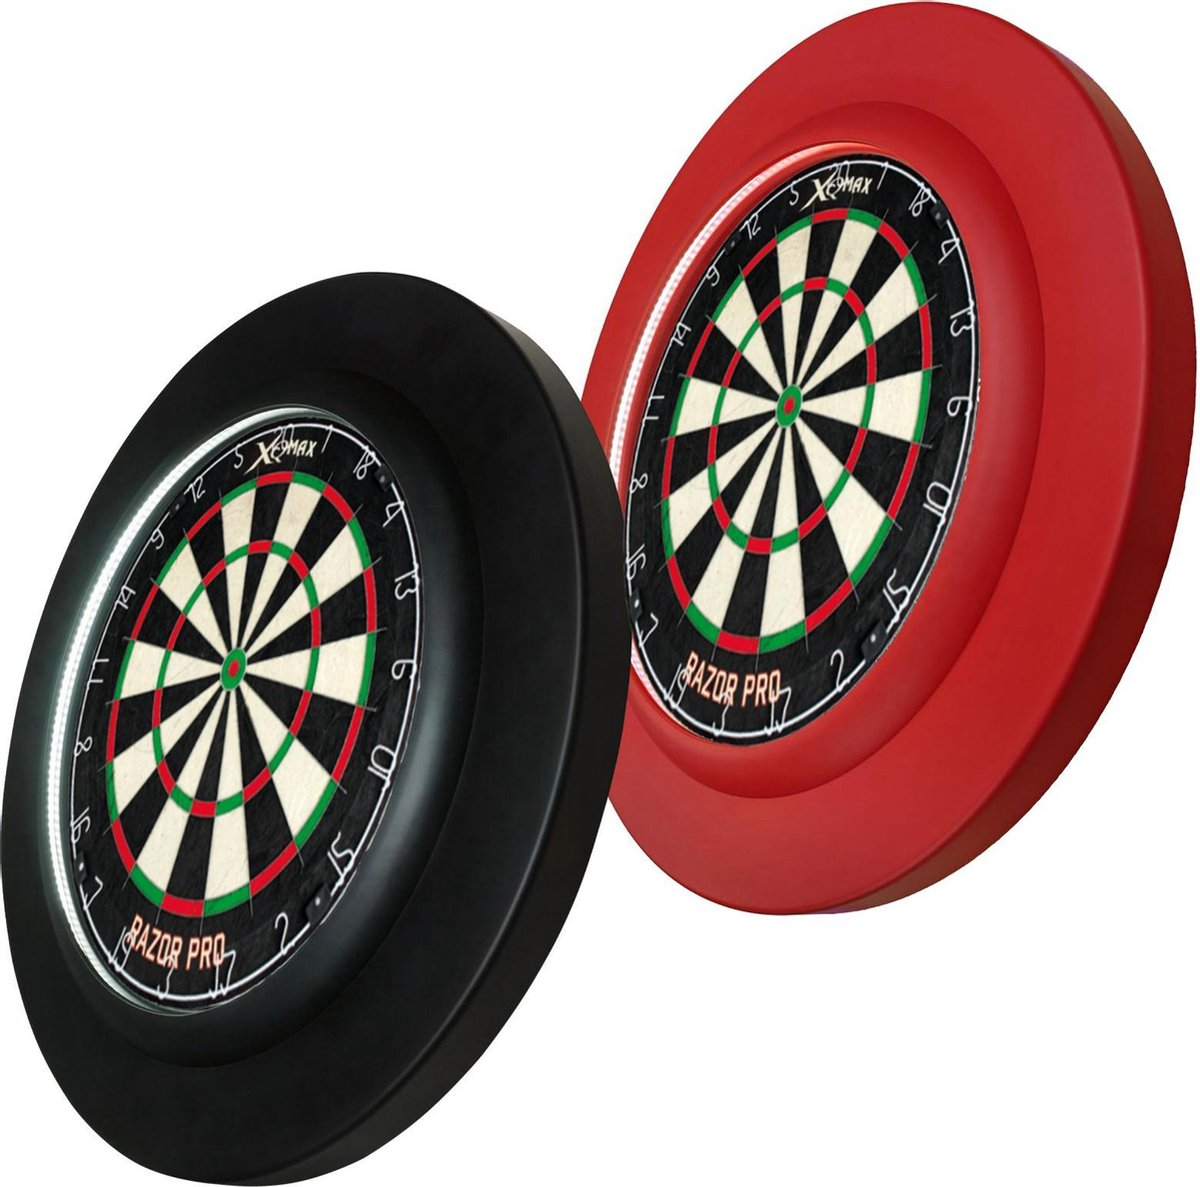 Dragon Darts PU LED set - surround ring - inclusief - dartboard verlichting - en Razor PRO - dartbord - zwart